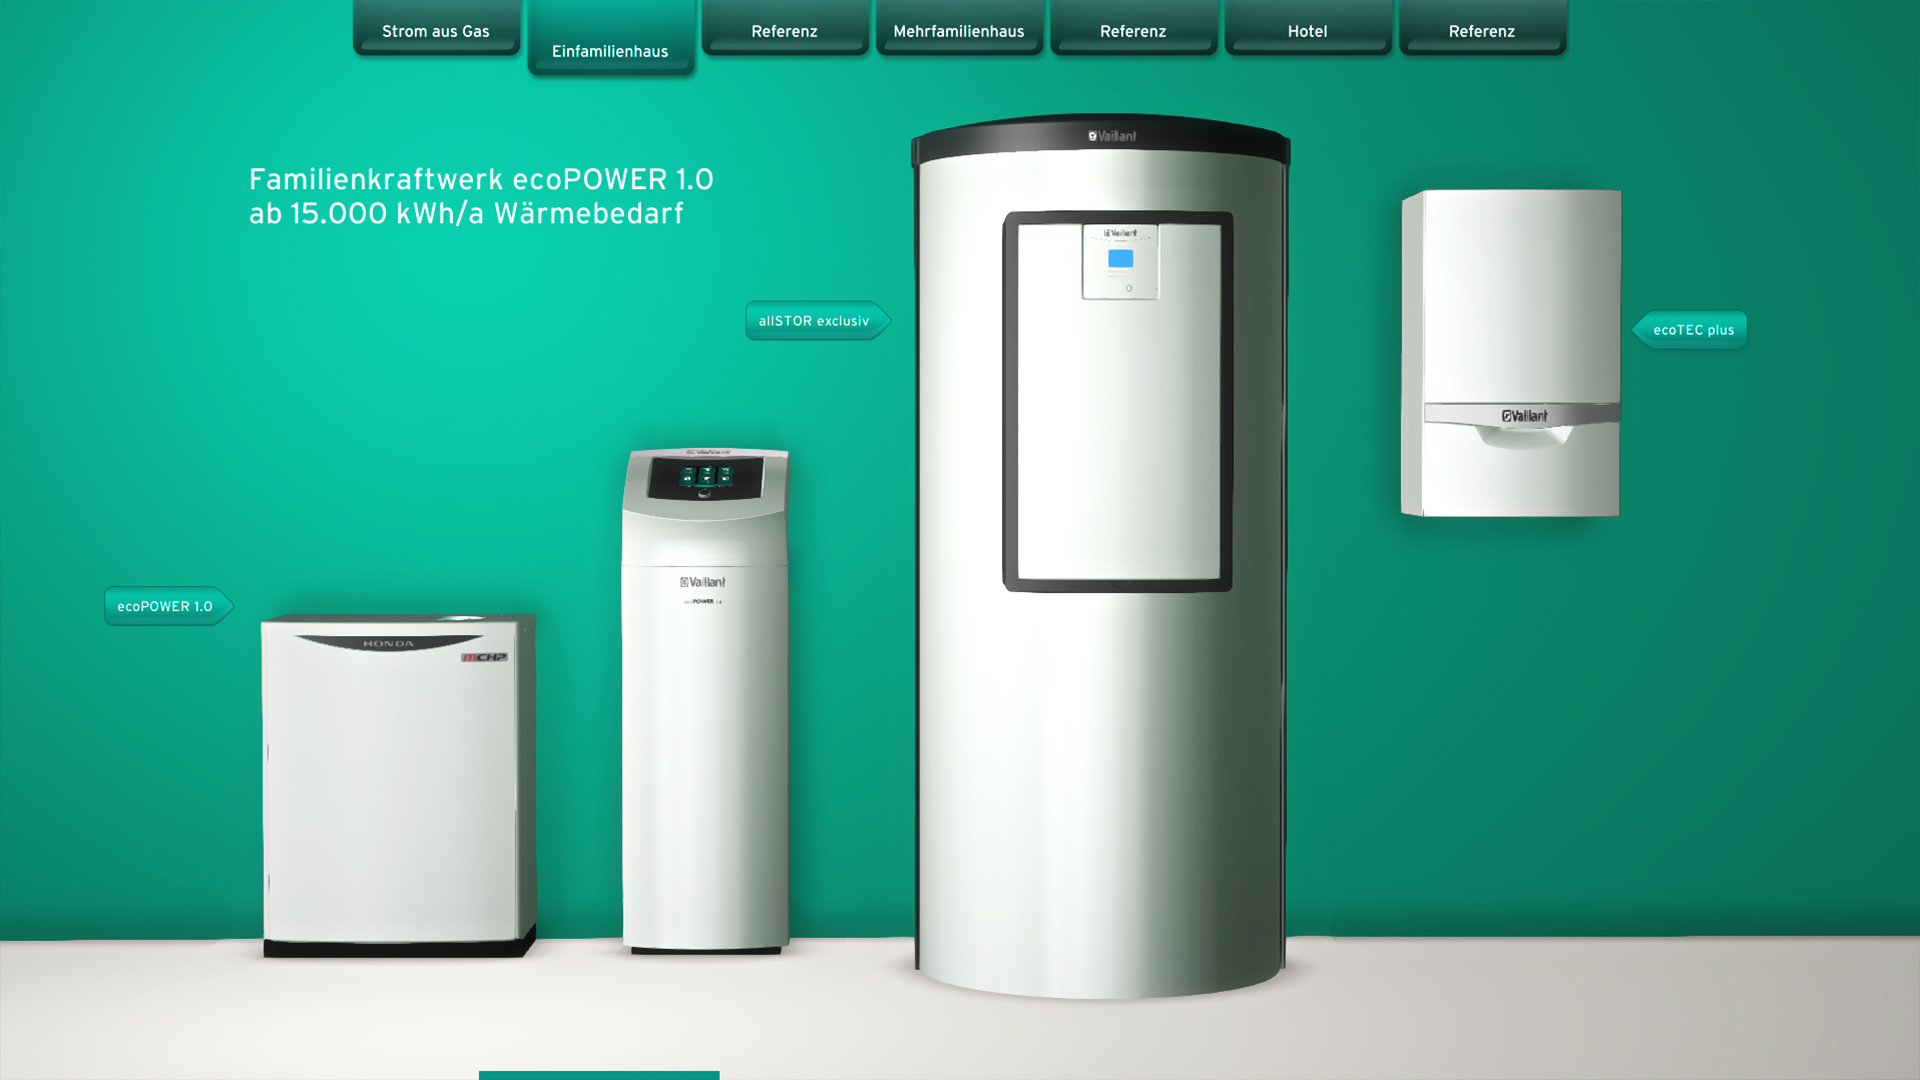 vaillant city unity trade fair application realistic representation of appliances